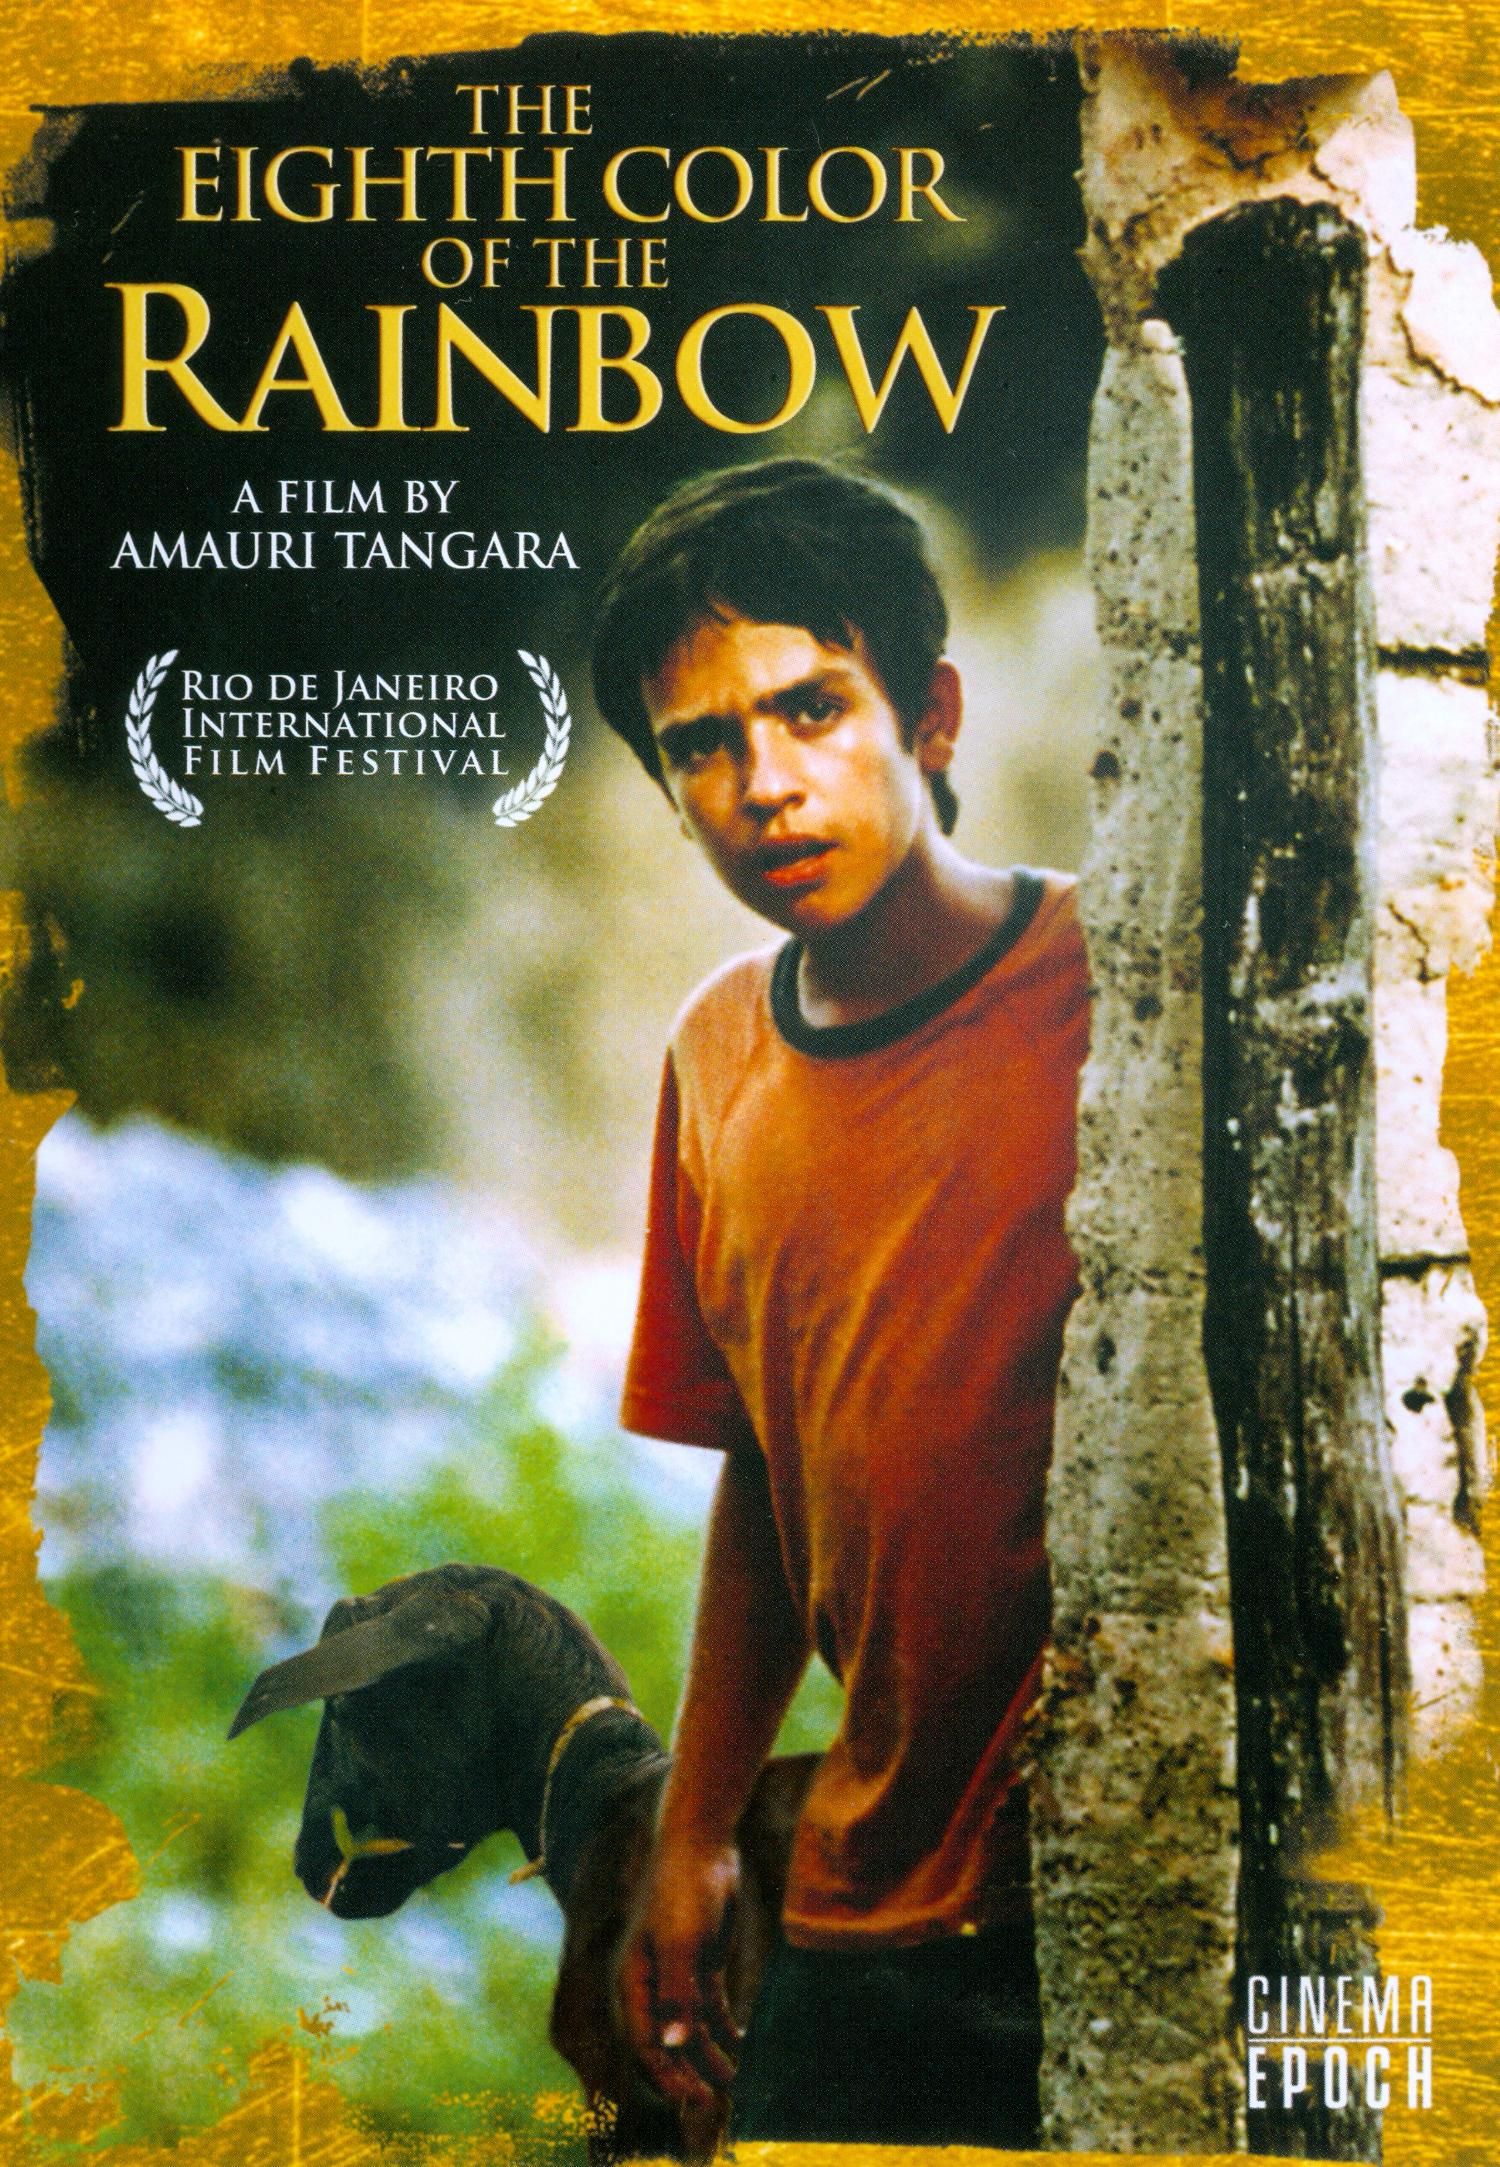 The Eighth Color of the Rainbow (2004)